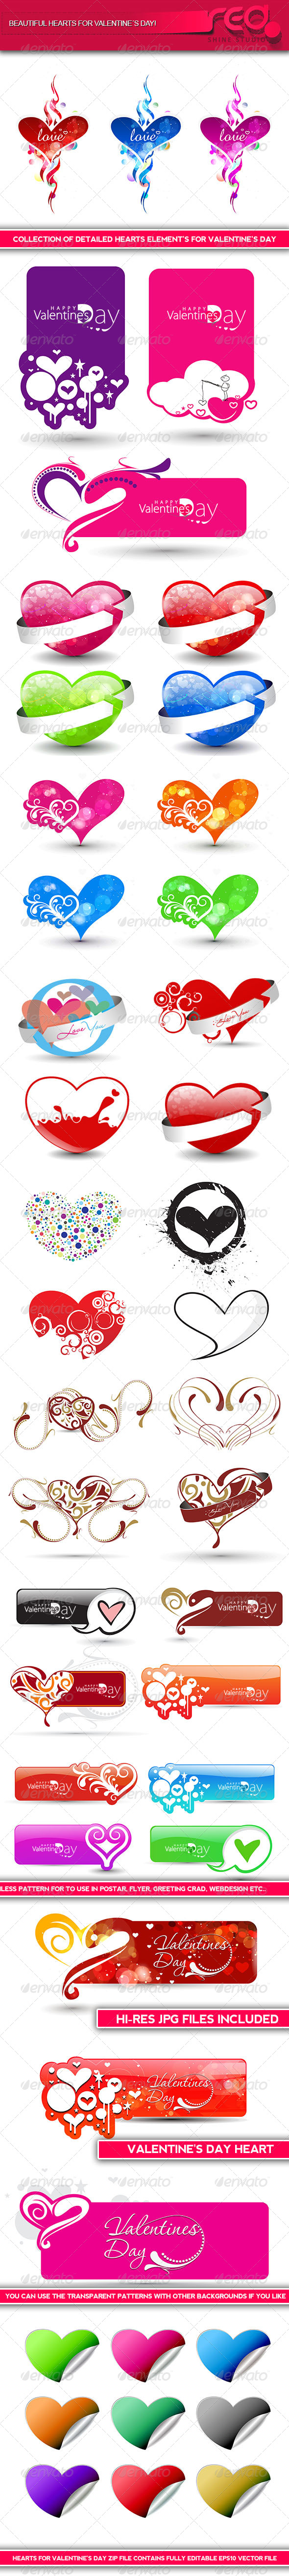 GraphicRiver Valentine s Day Heart Shape 6617542